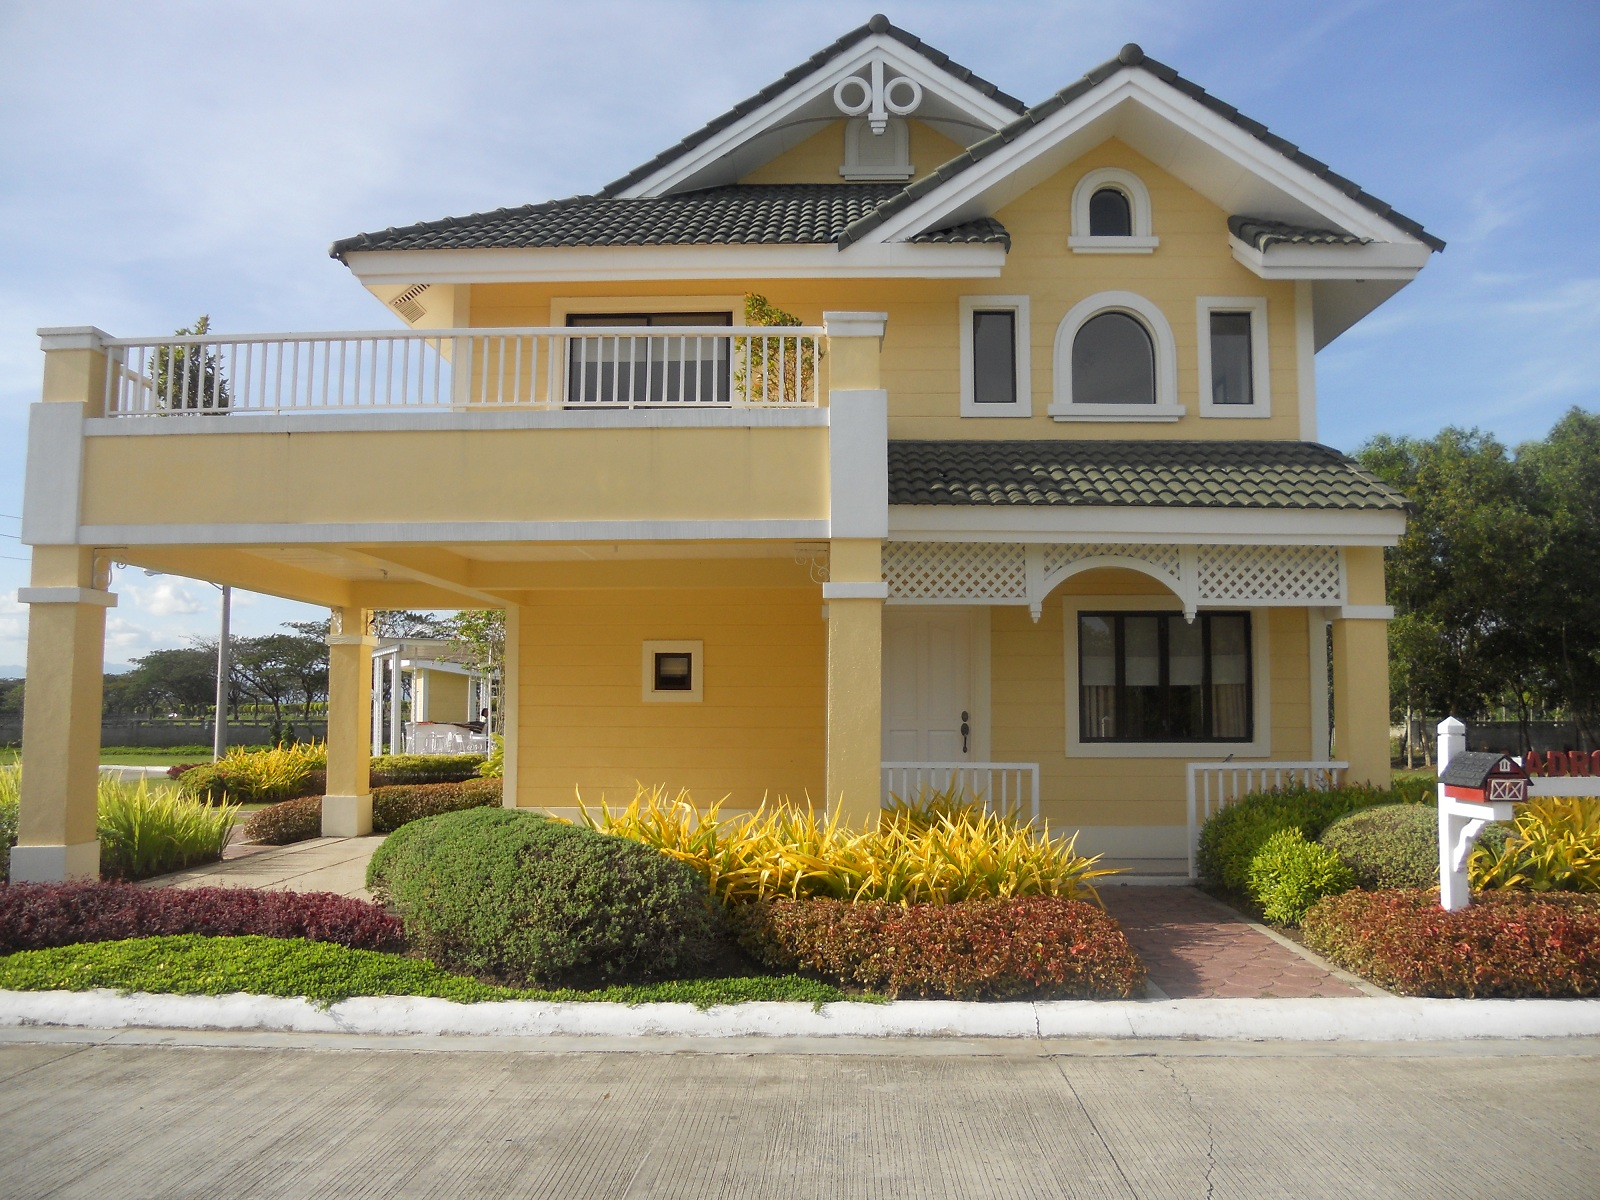 Savannah crest iloilo within savannah iloilo by camella for Design in casa